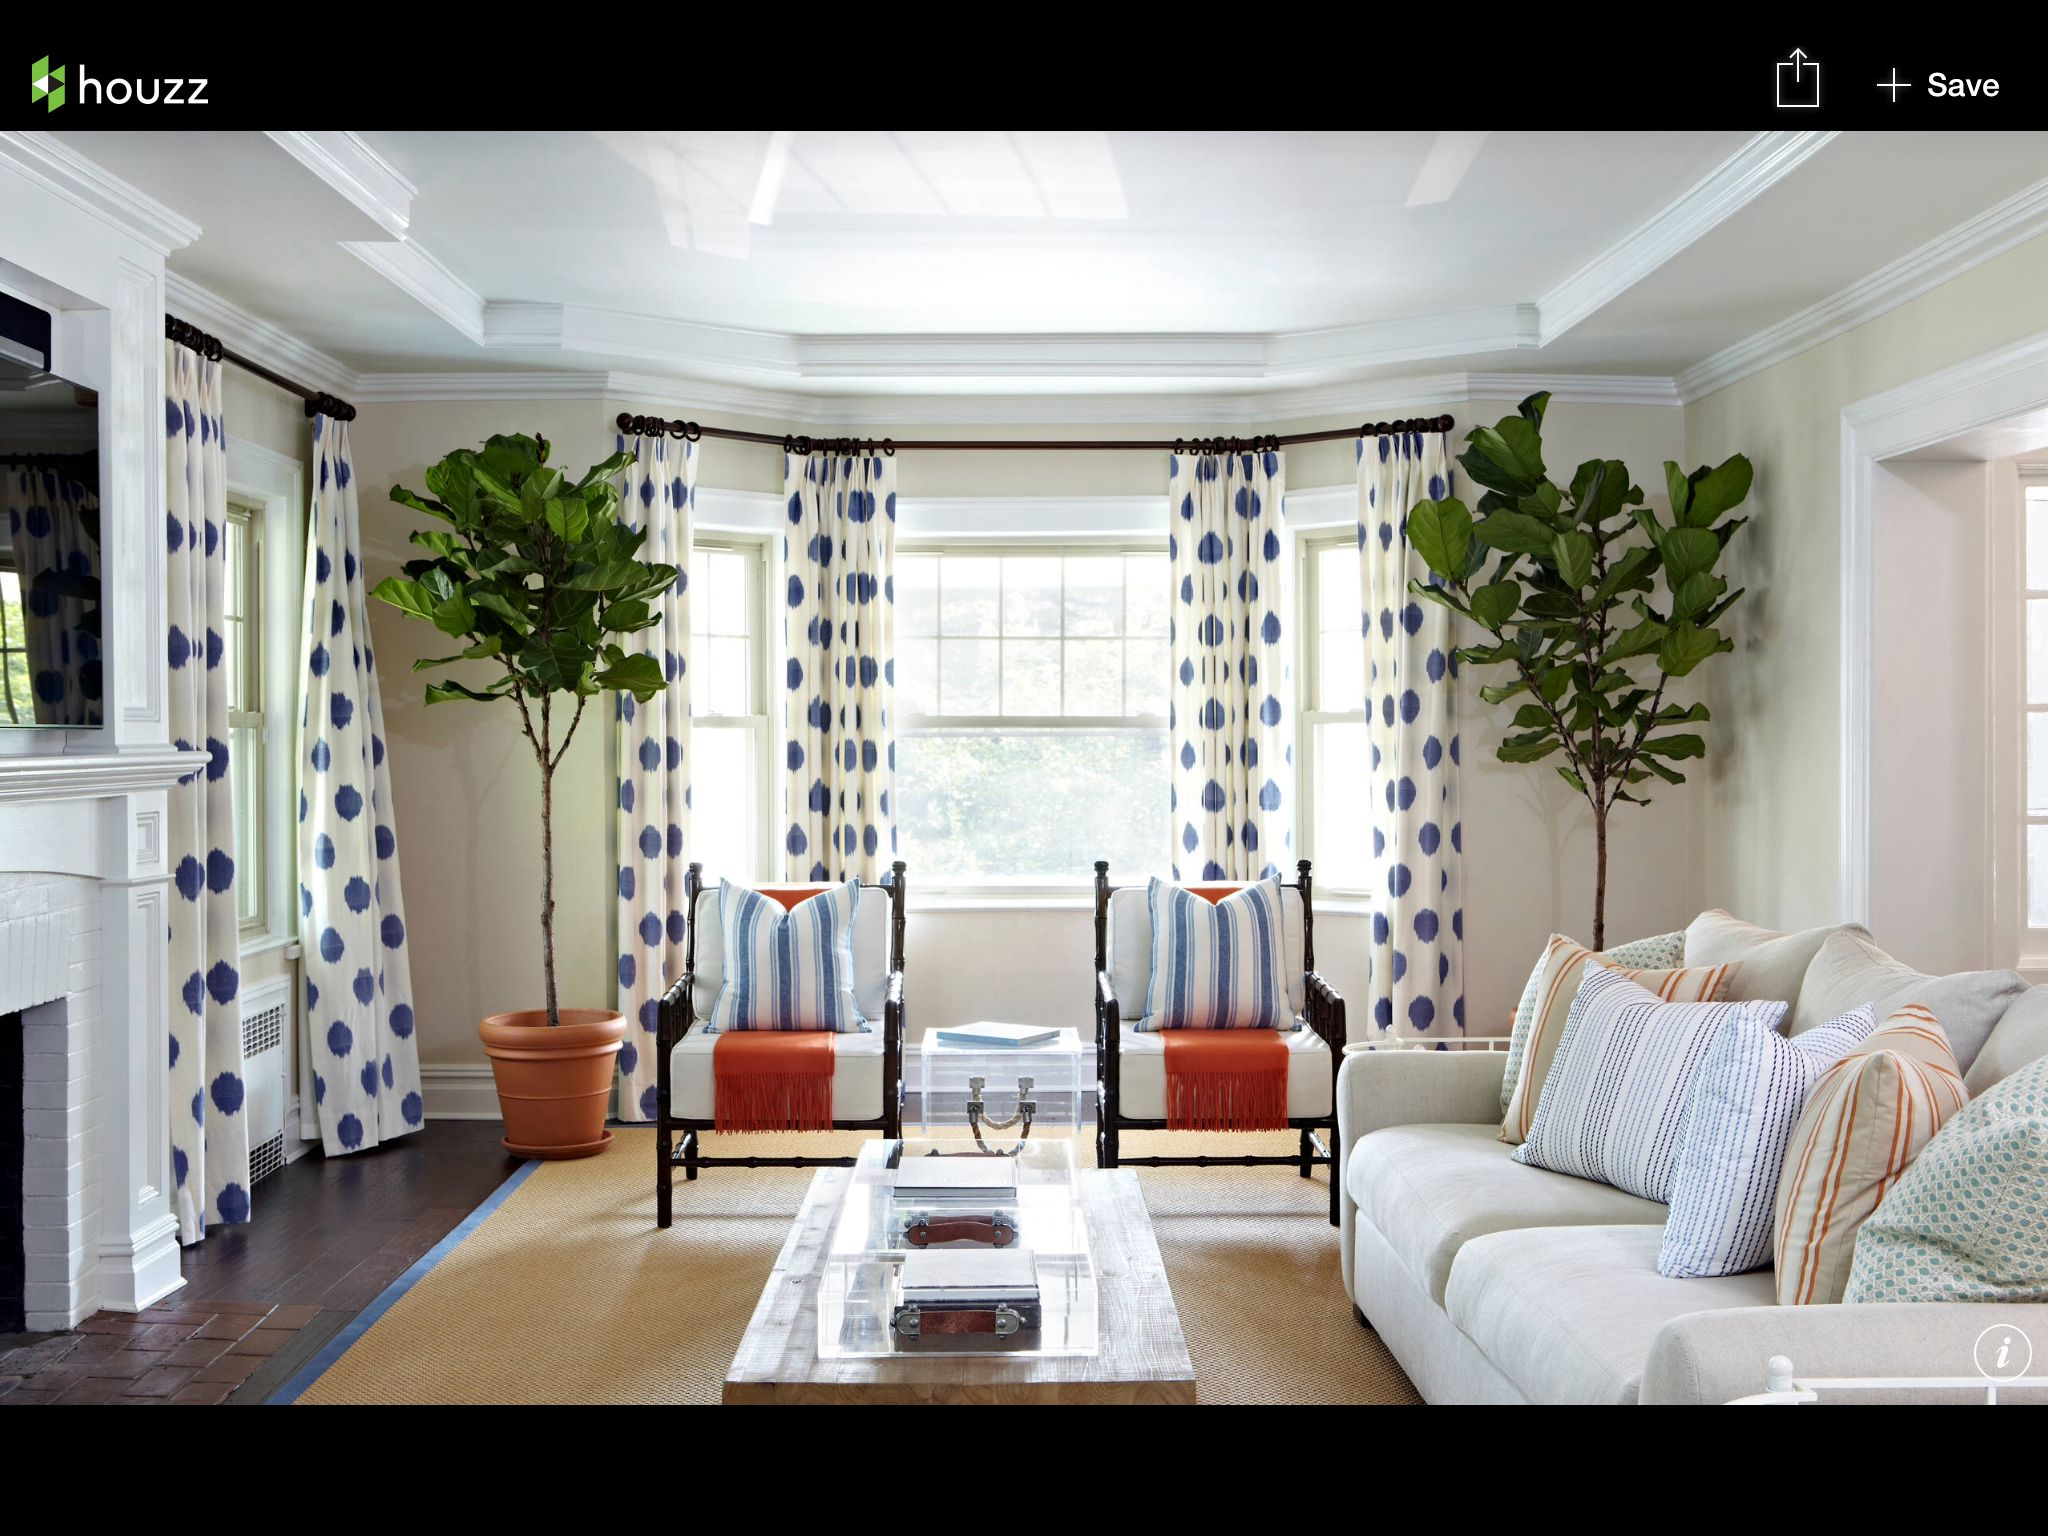 Living Room Design Houzz Extraordinary Living Room Inspiration From Houzz  House Inspiration  Pinterest Inspiration Design